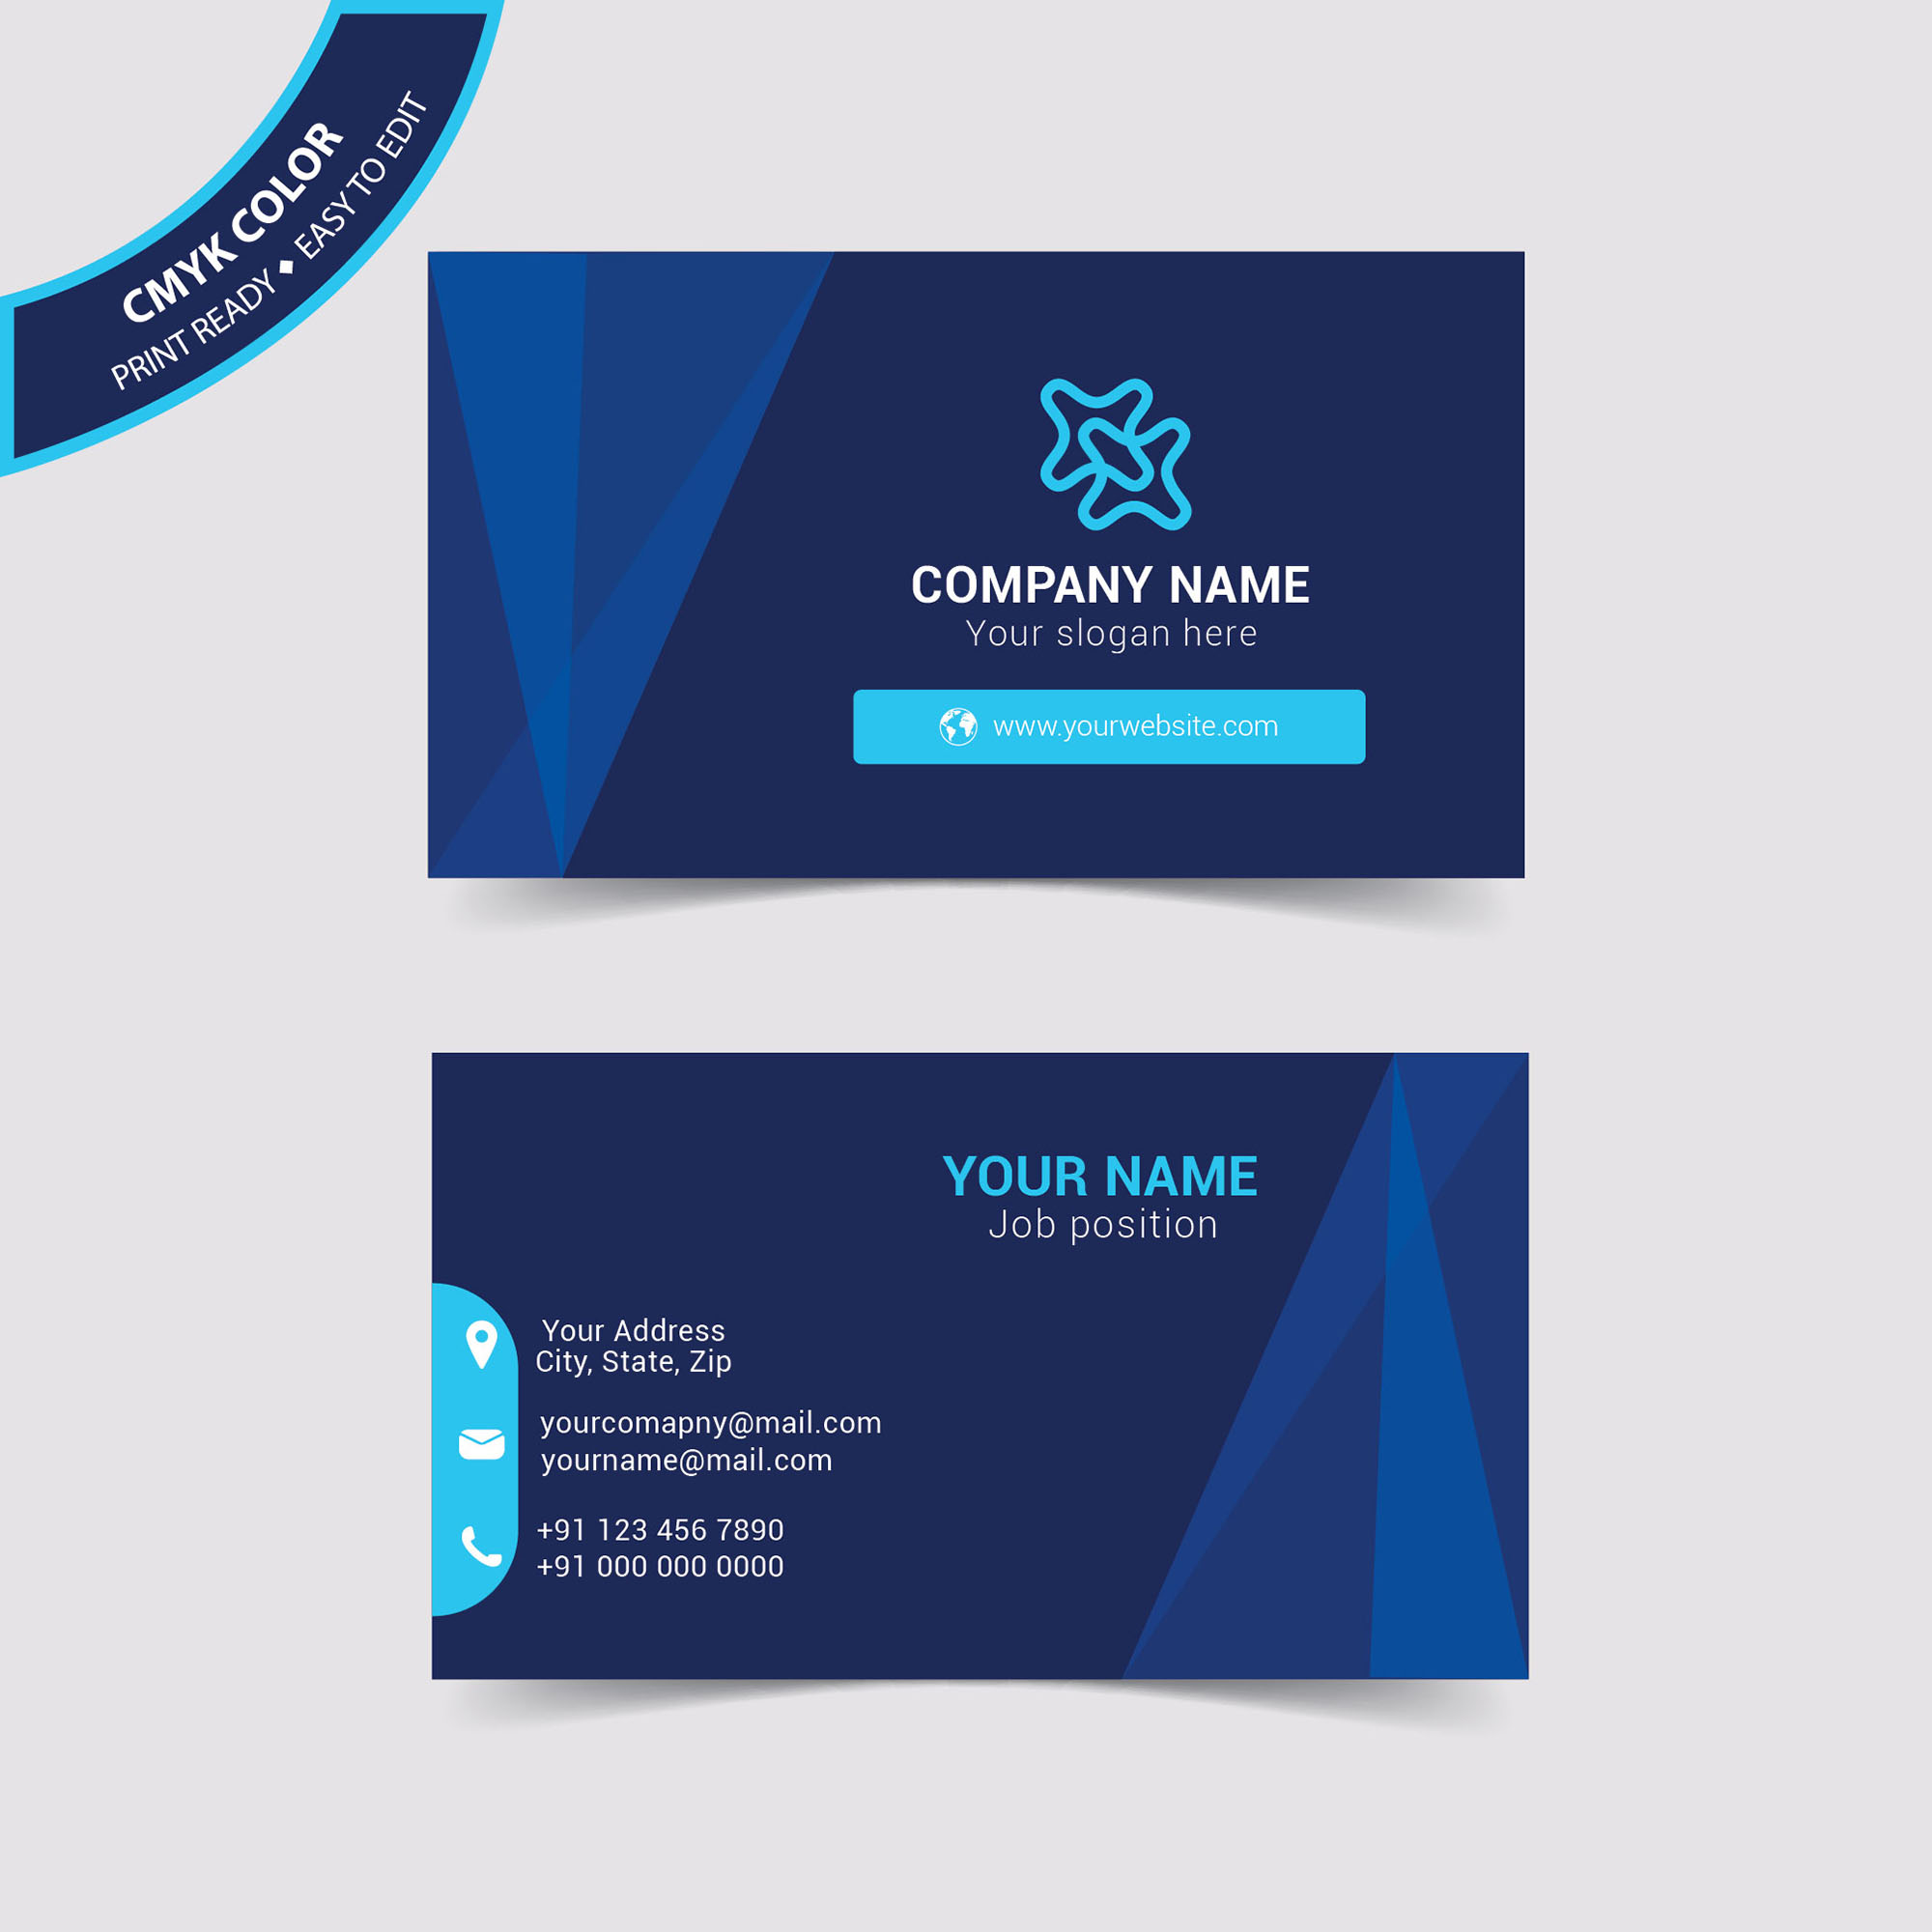 Blue creative business card design free download wisxi business card business cards business card design business card template design templates accmission Image collections